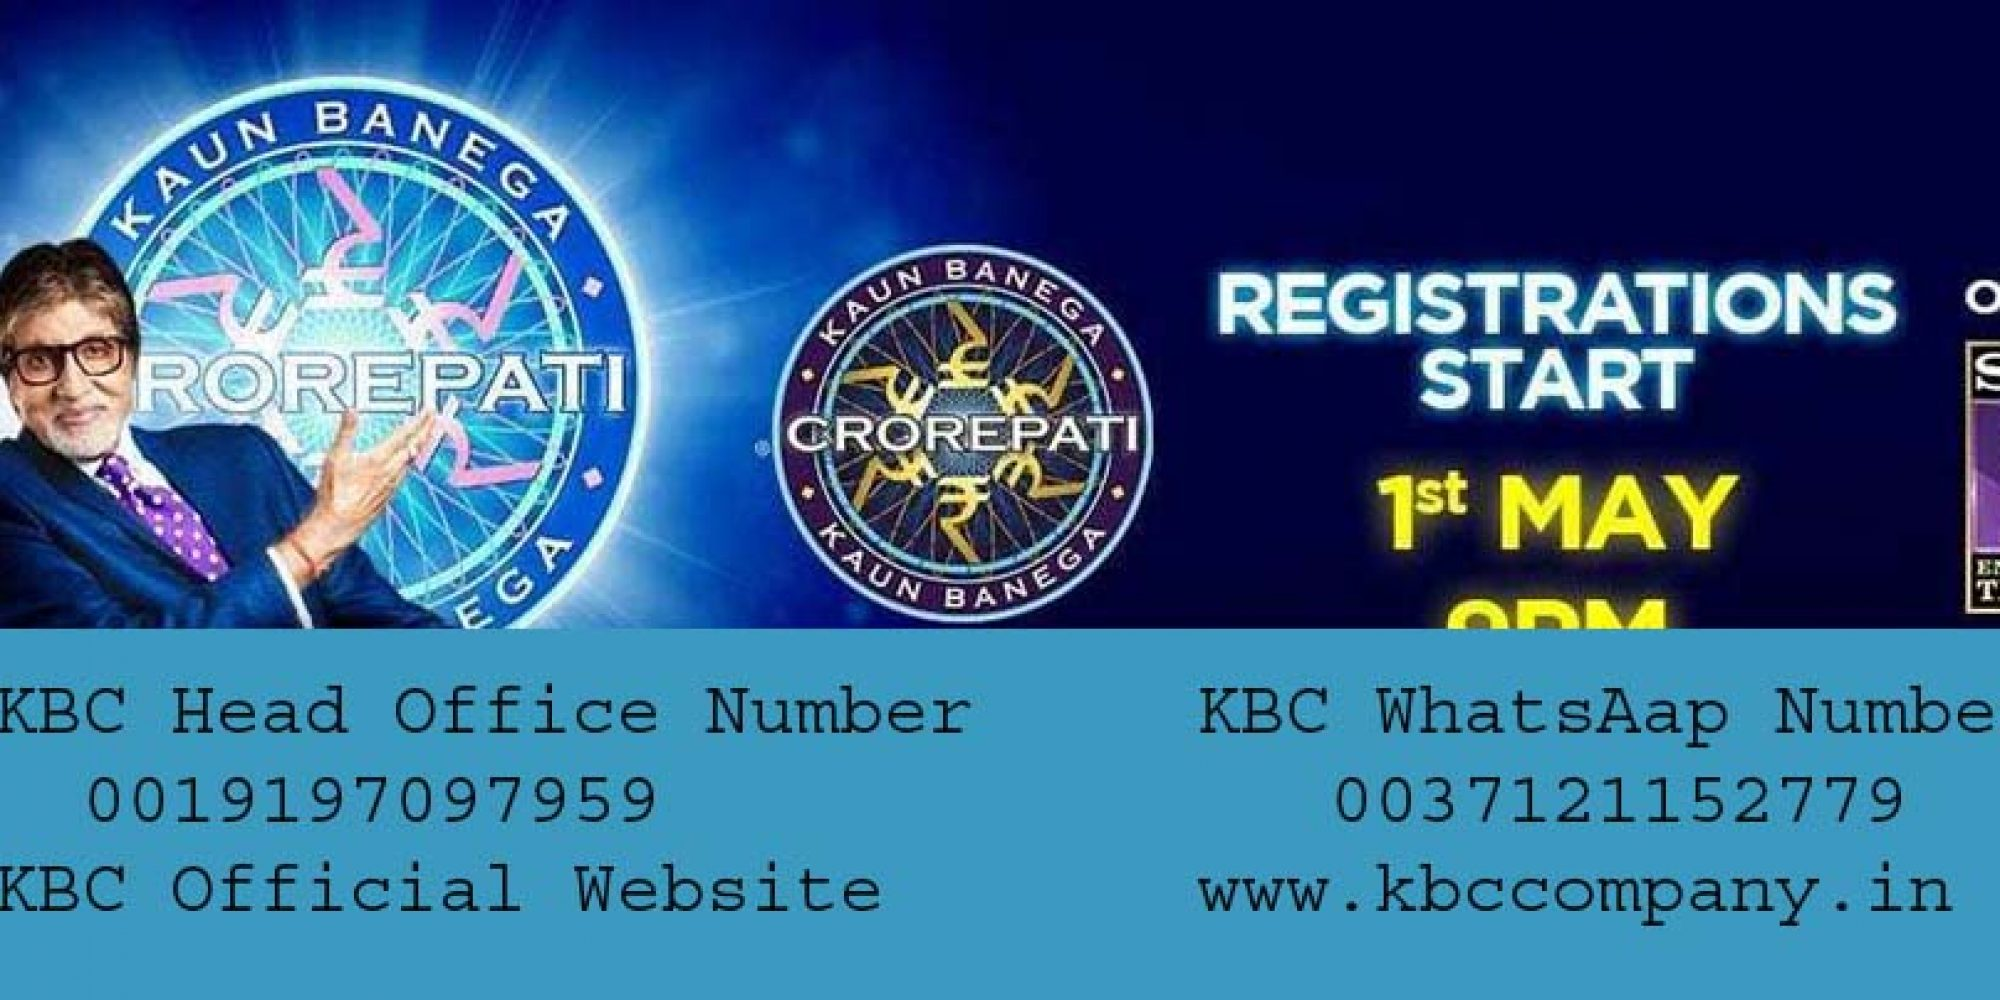 KBC Helpline Number 0019197097959